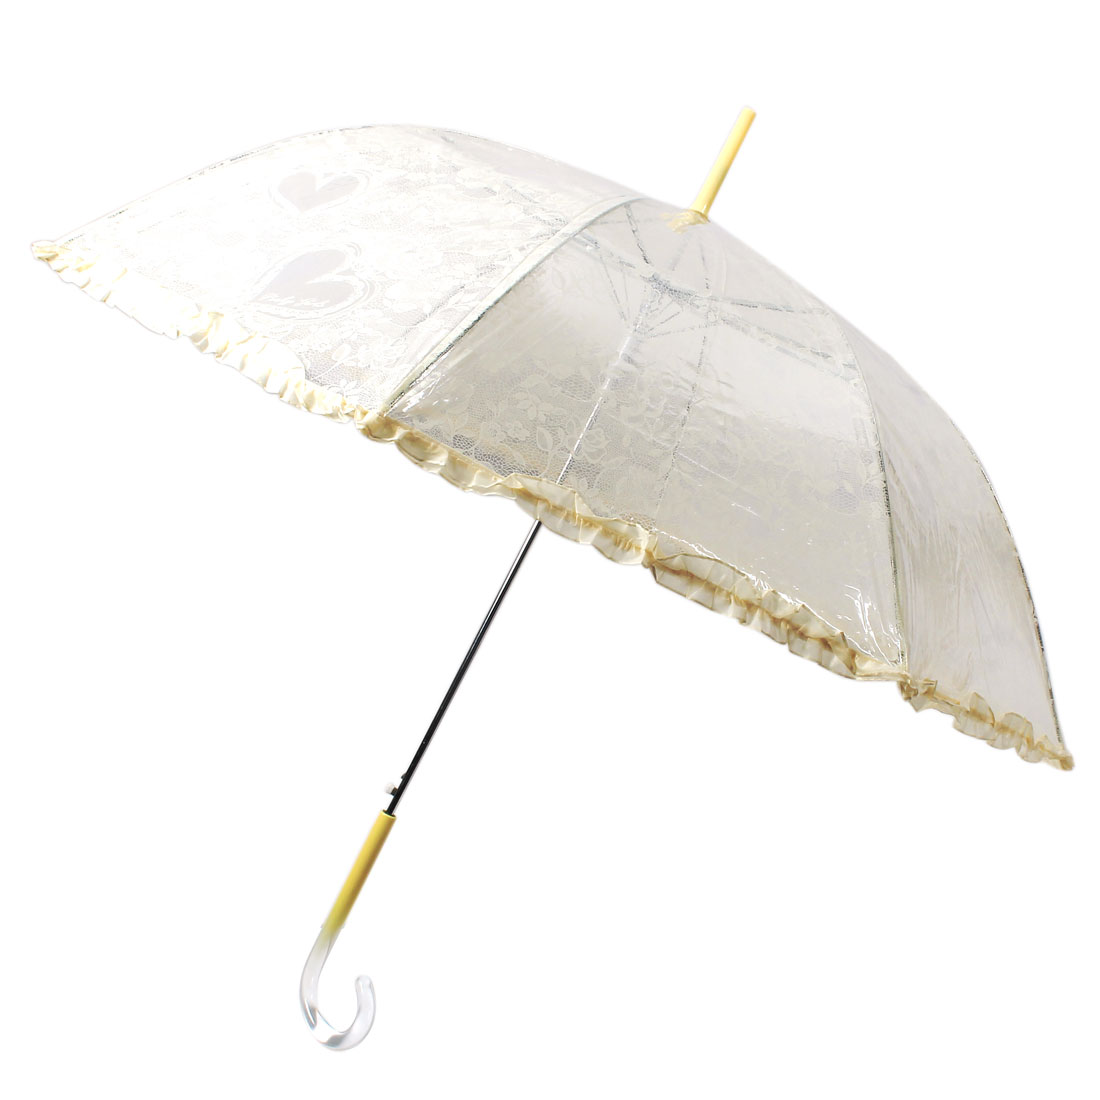 Long Hooked Handle Flower Heart Printed Lace Brim Umbrella Transparent Yellow